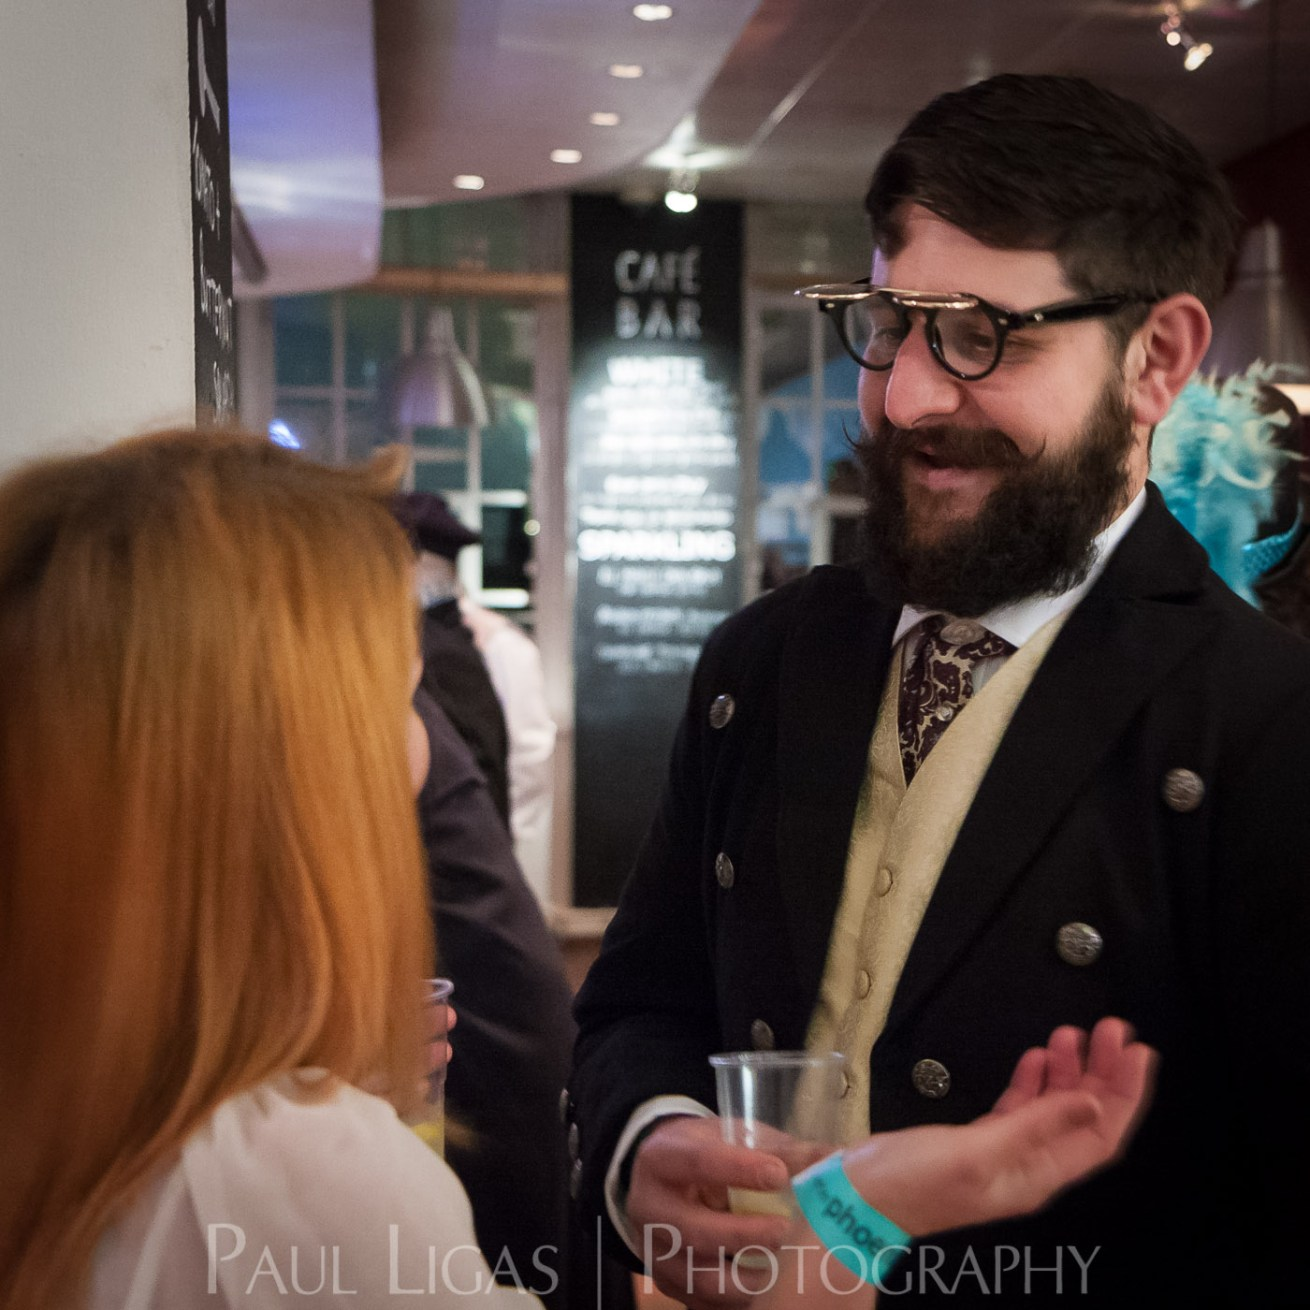 Steampunk Yule Ball 2014, event photographer photography Herefordshire 6387